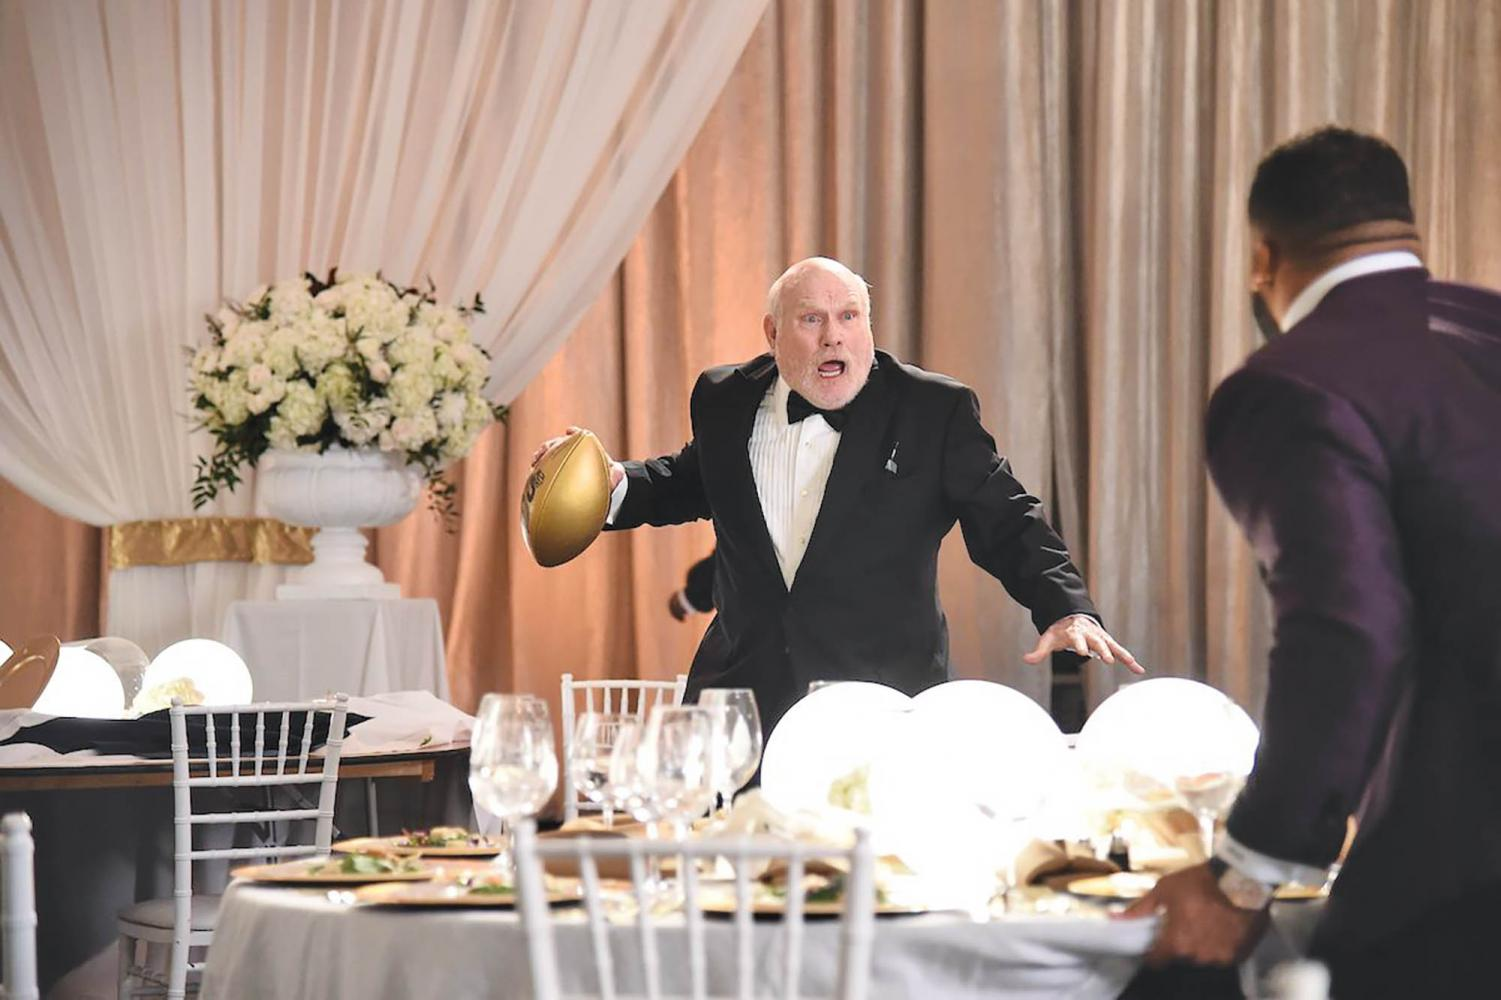 Terry Bradshaw prepares a pass to another NFL legend.